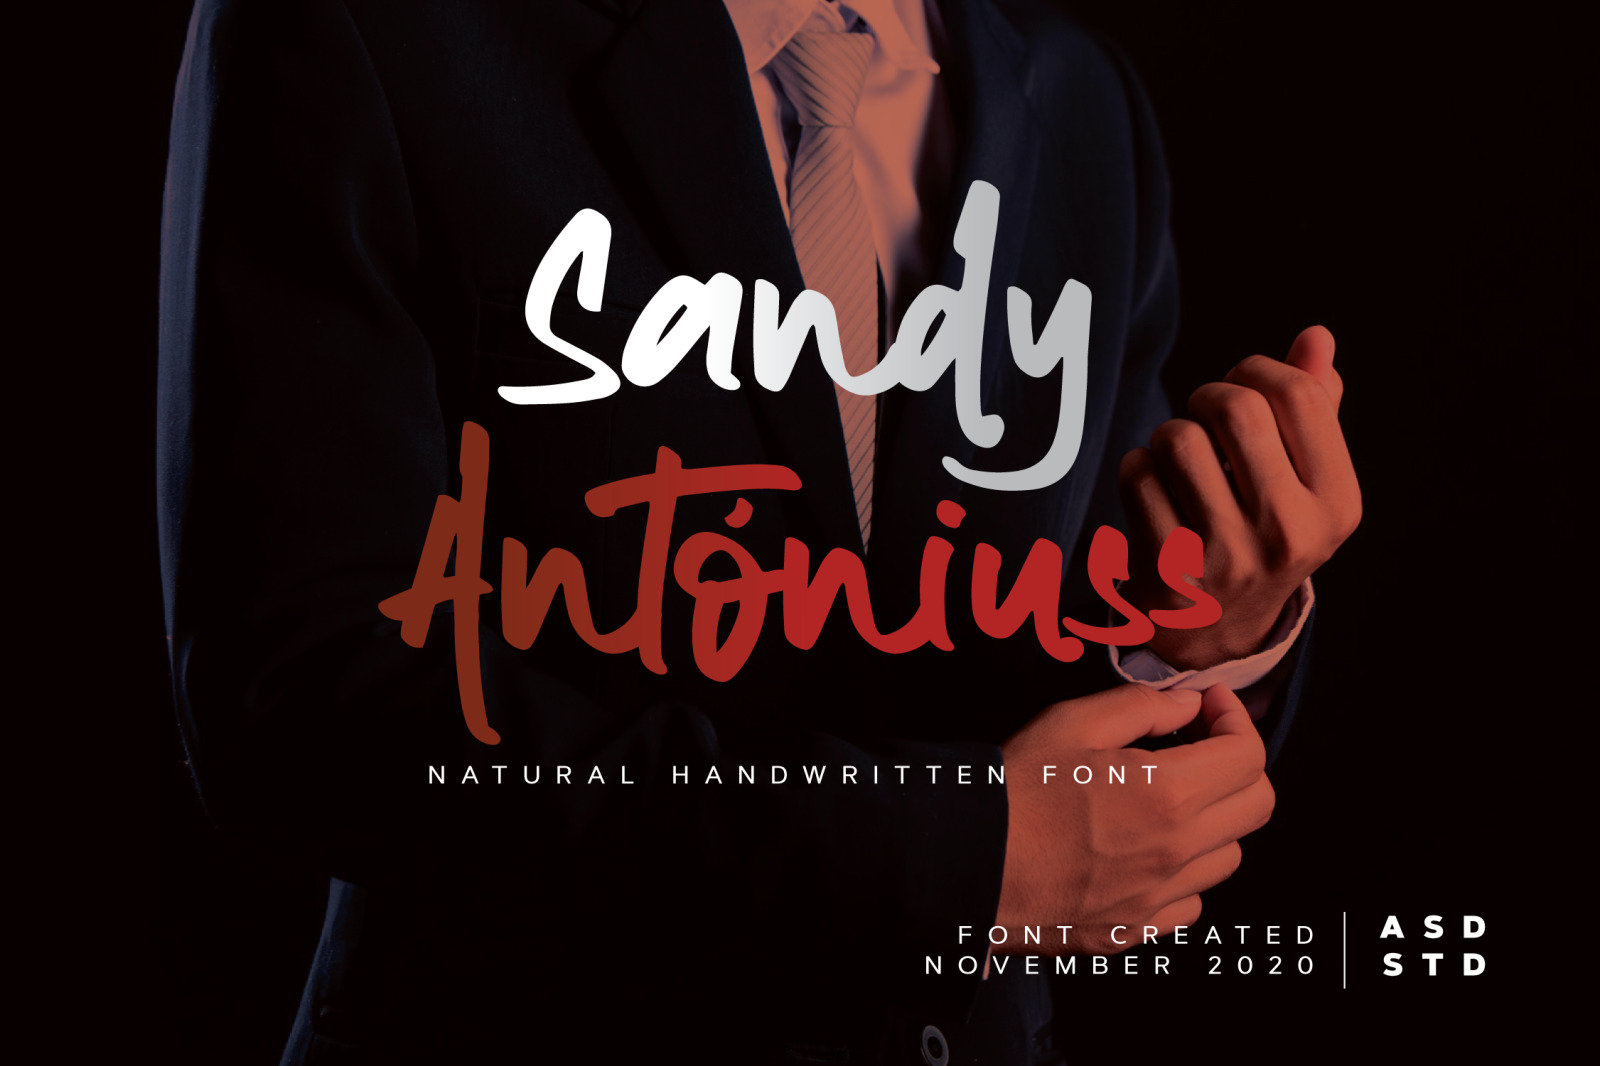 Sandy Antoniuss - Natural Handwritten